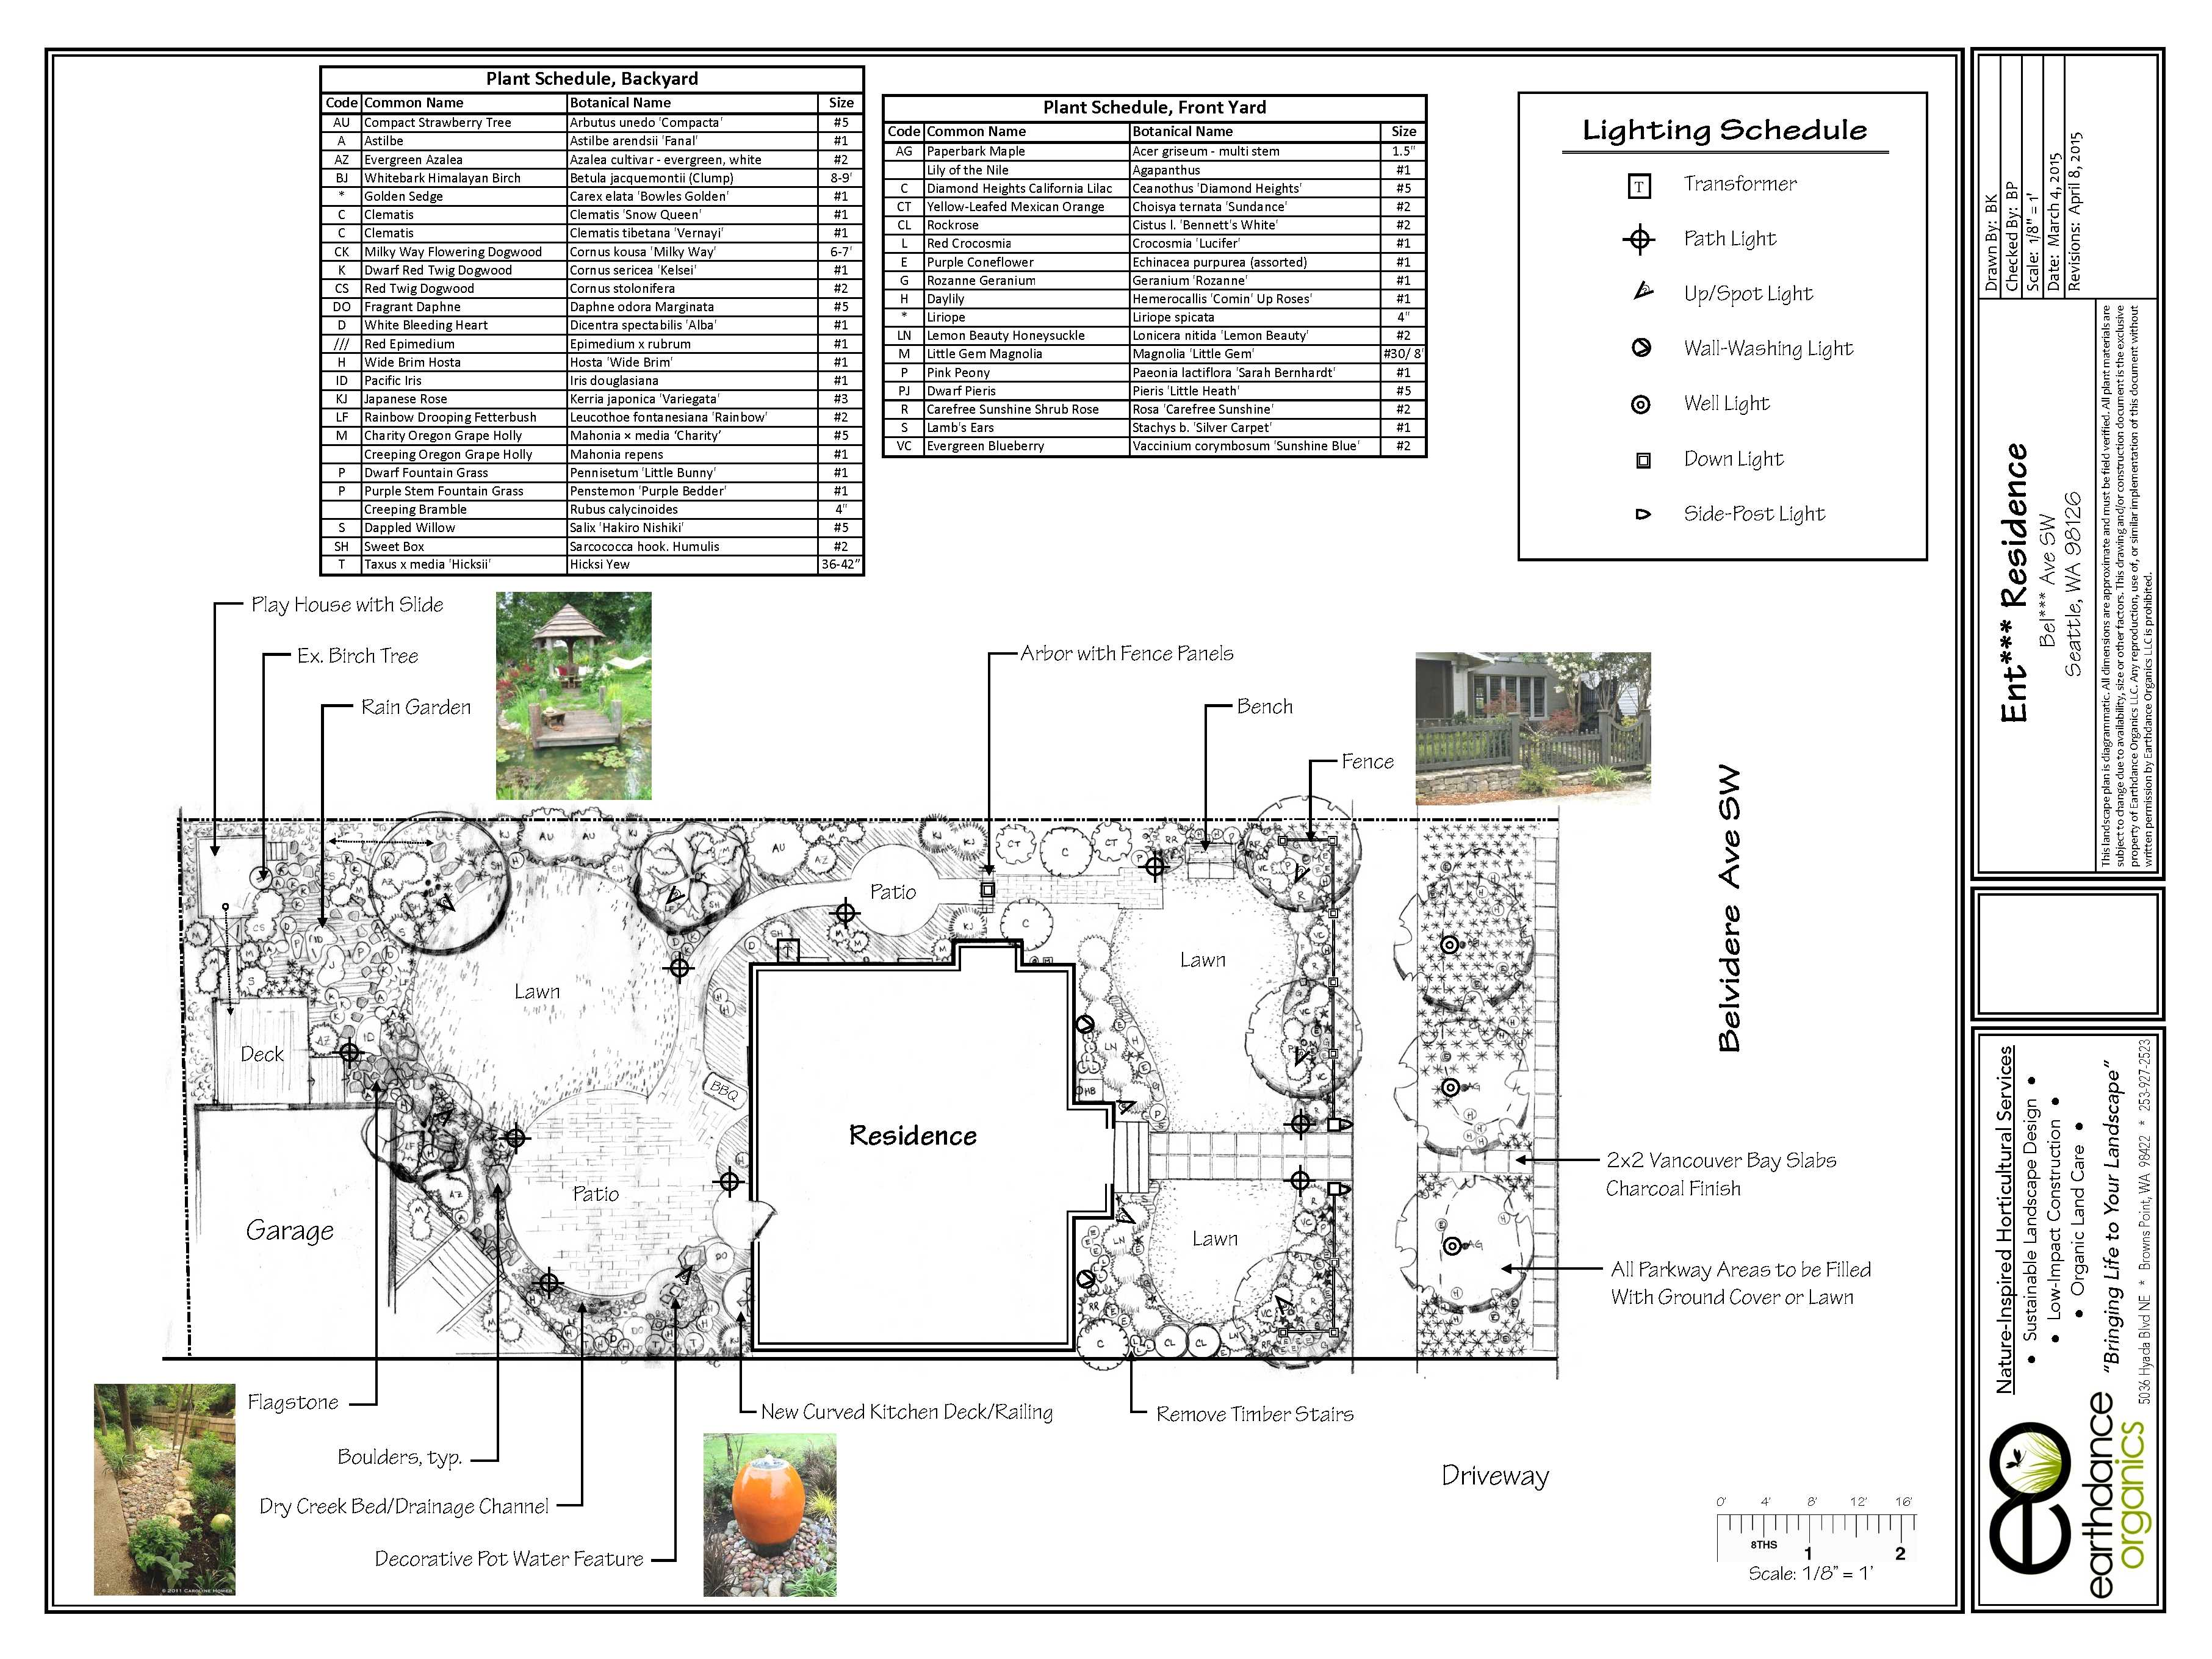 ecologically sustainable design essay Designing sustainable social-ecological systems requires fully  conservation and the design of sustainable social-ecological  of this essay: amanda robertson .